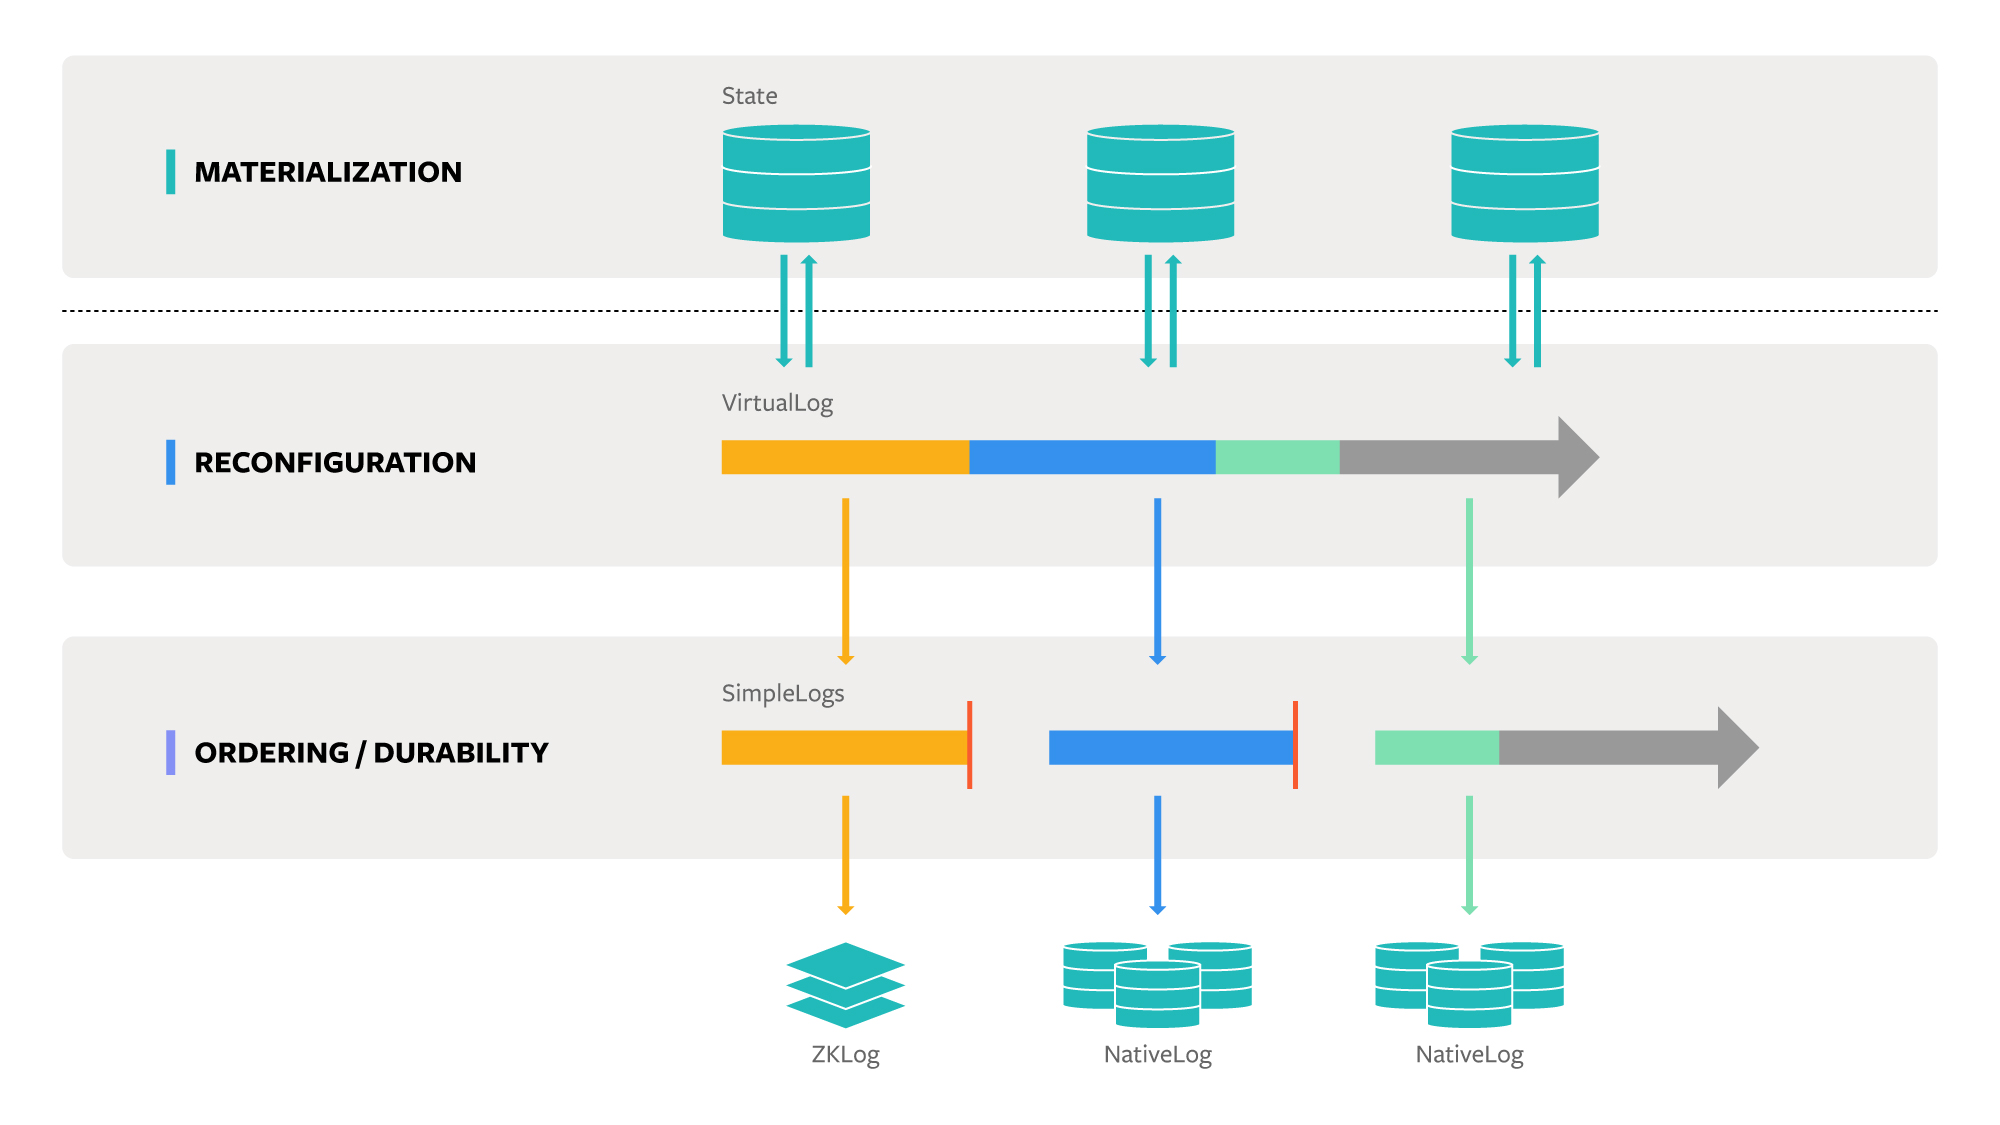 Delos is designed around the novel abstraction of a VirtualLog, a type of distributed shared log. Individual servers maintain consistency for local copies of state via the VirtualLog. To modify